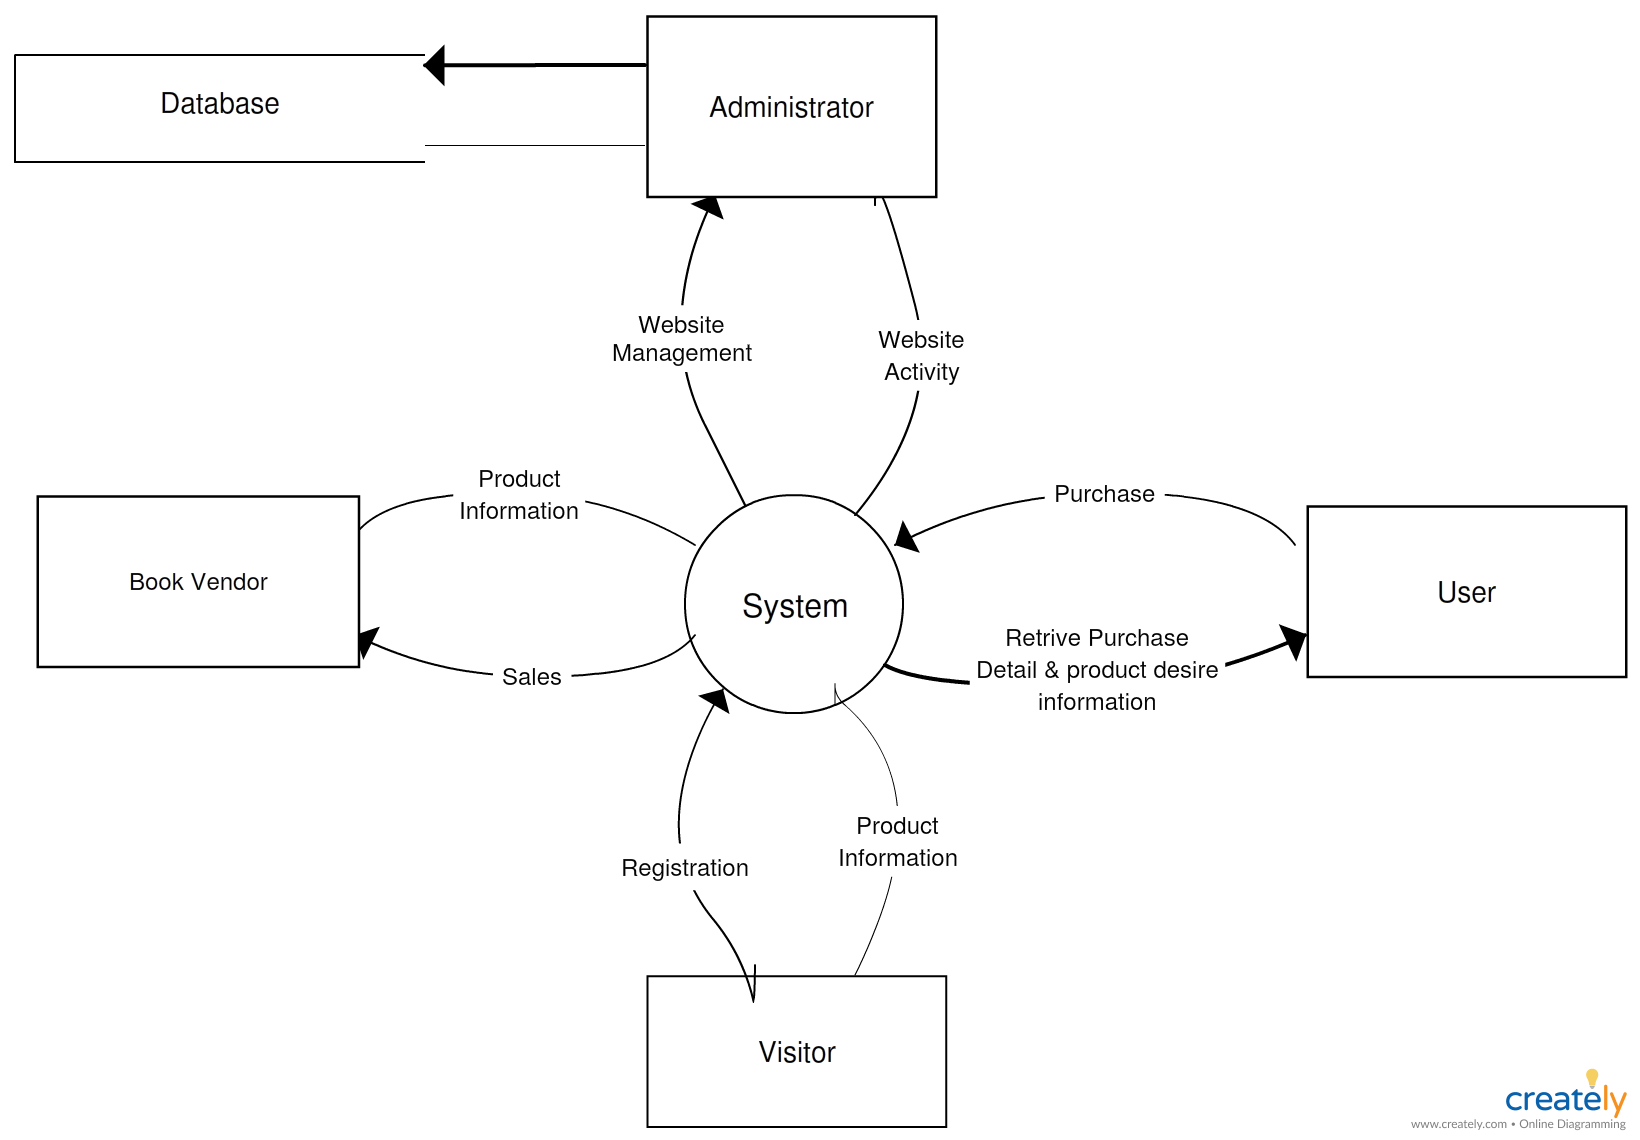 medium resolution of a level 0 data flow diagram dfd shows a data system as a whole and emphasizes the way it interacts with external entities this dfd level 0 example shows